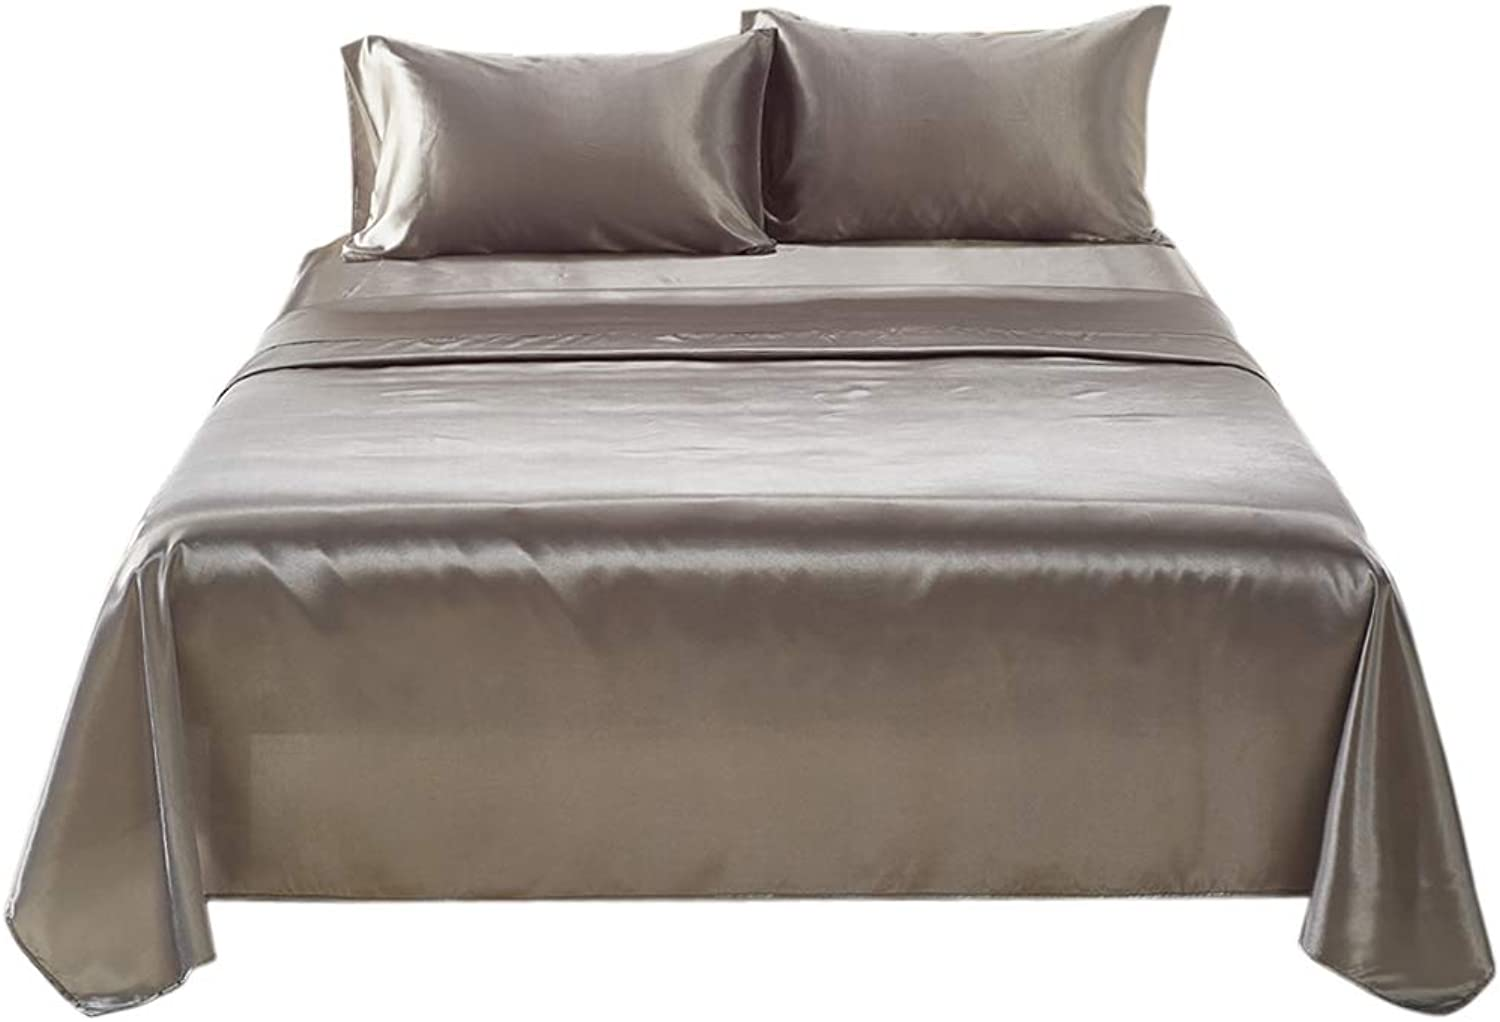 D DOLITY Hotel Luxury Bedding Sheet Set (Fitted, Flat, Pillow Case) - 3 Size for Choice - No Pilling & Softness - Grey, Queen (4 Piece)